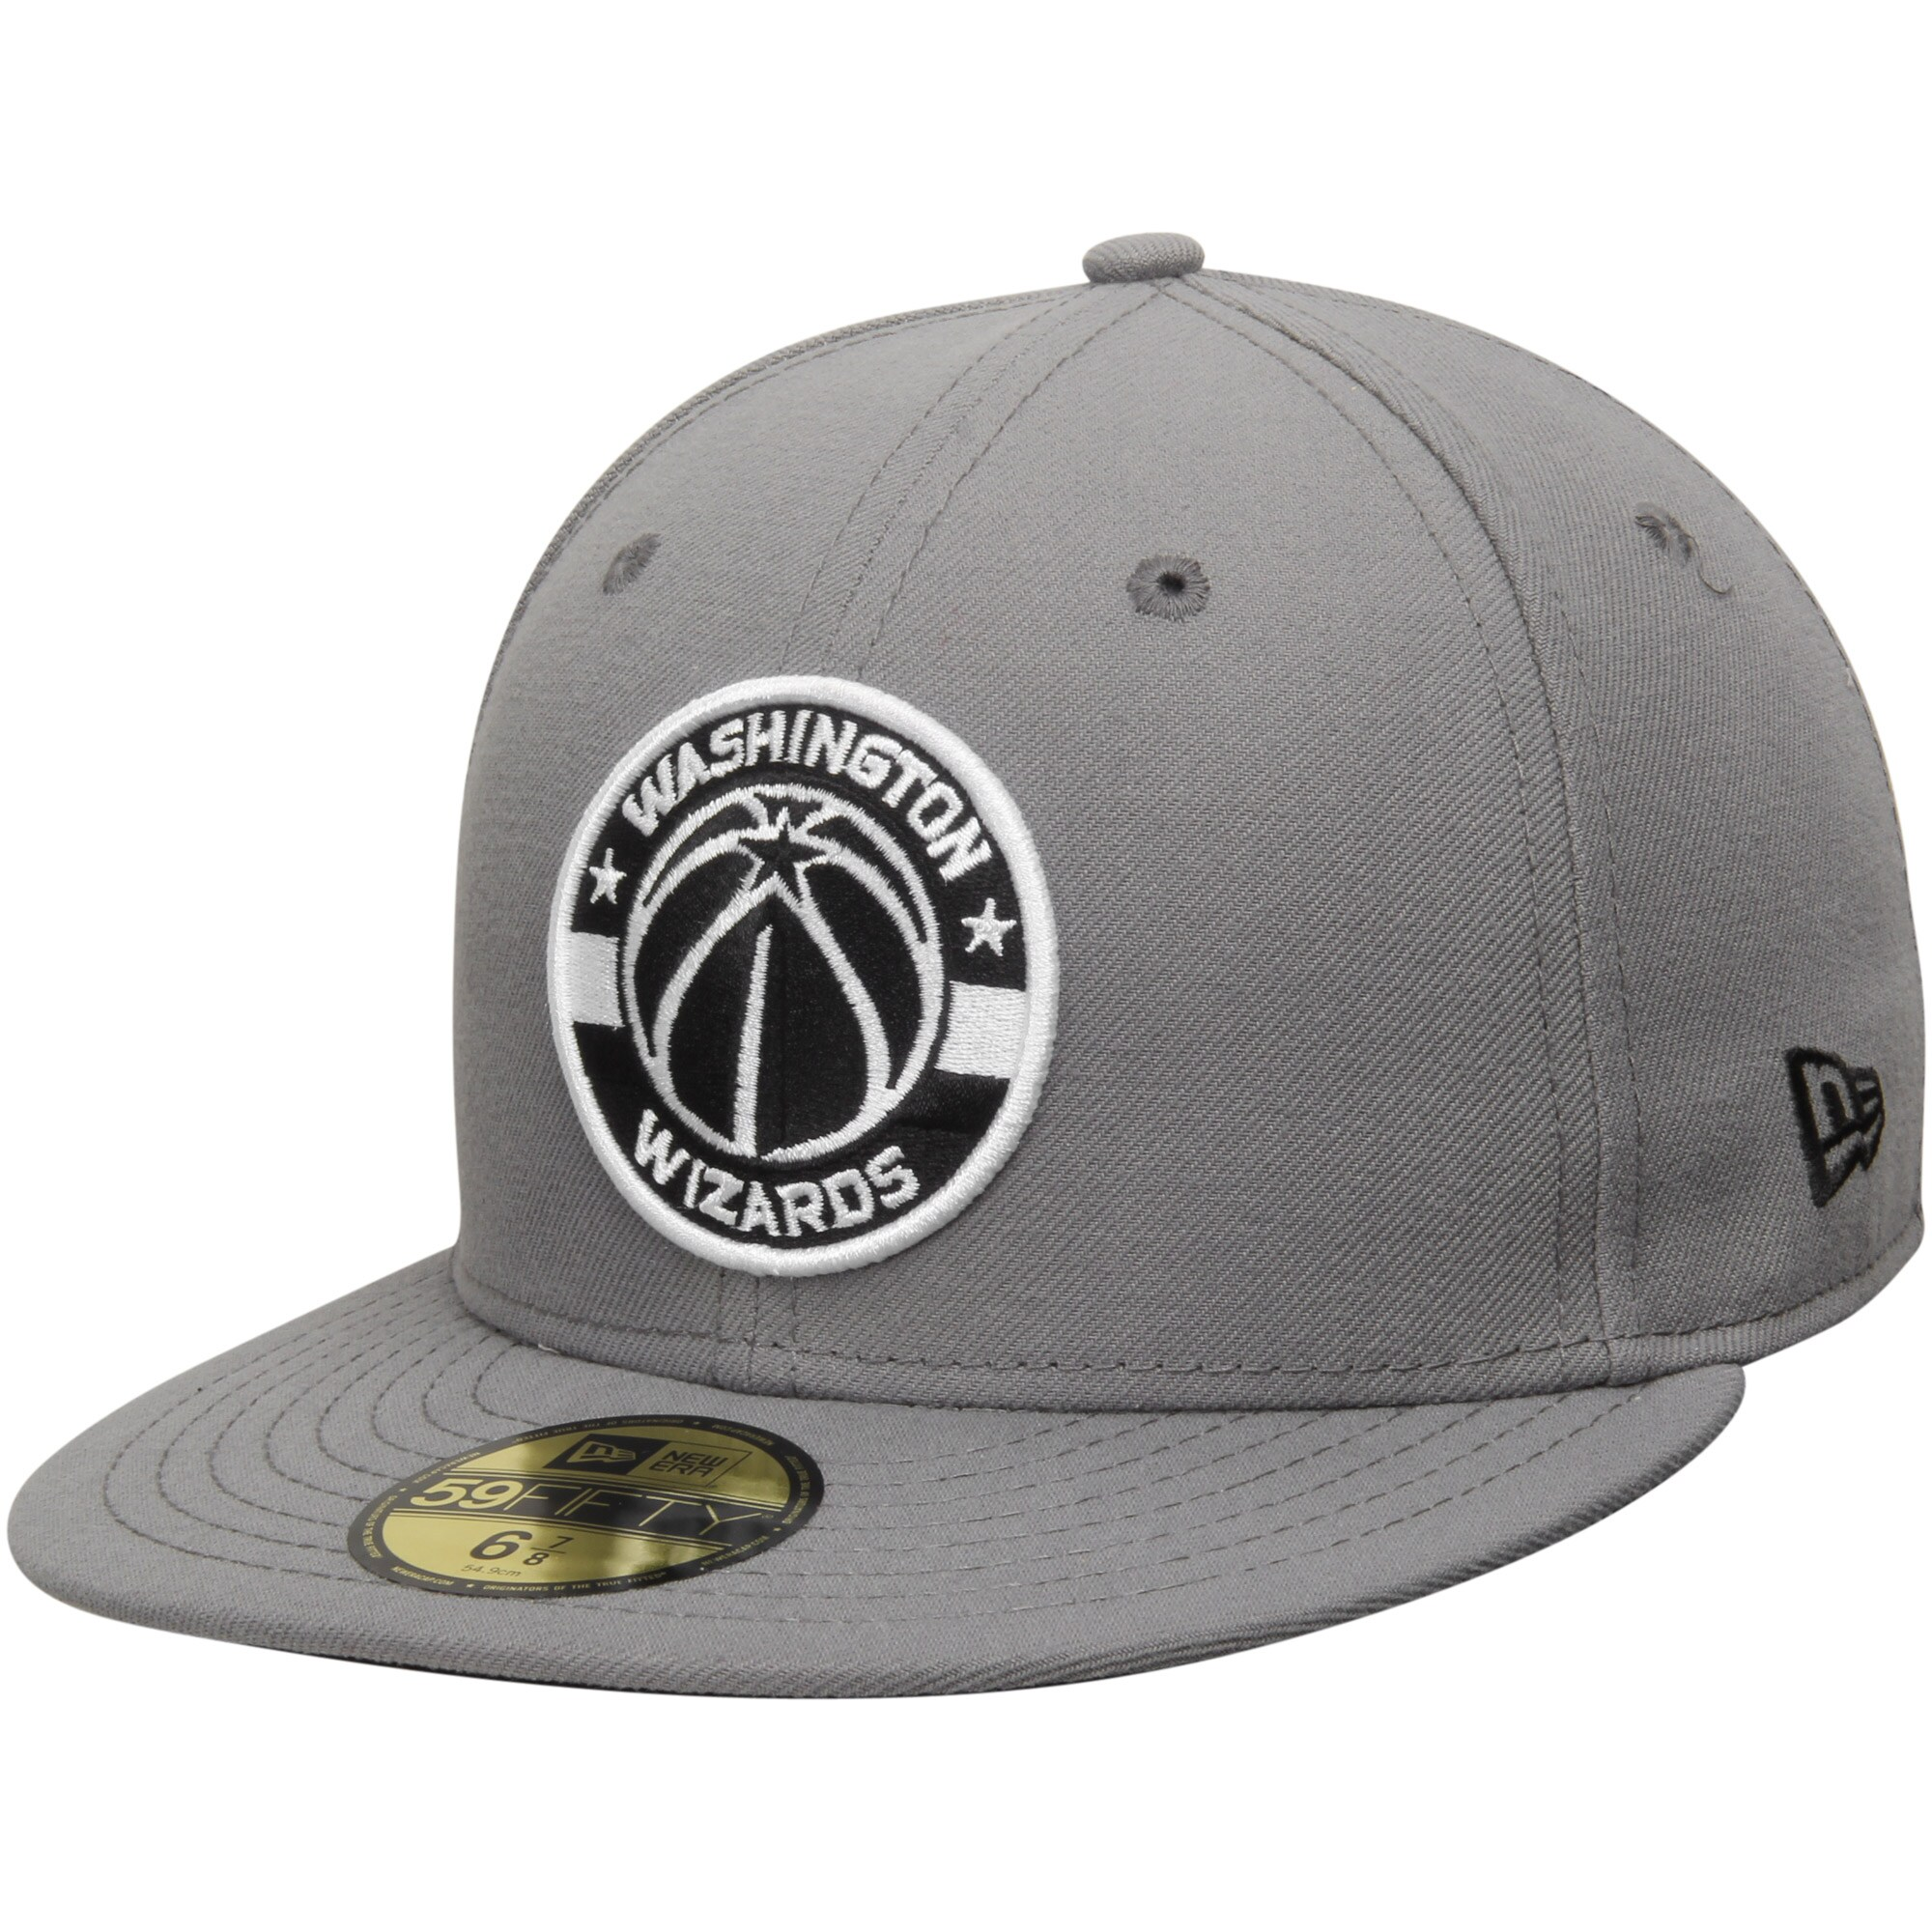 Washington Wizards New Era Current Logo 59FIFTY Fitted Hat - Gray